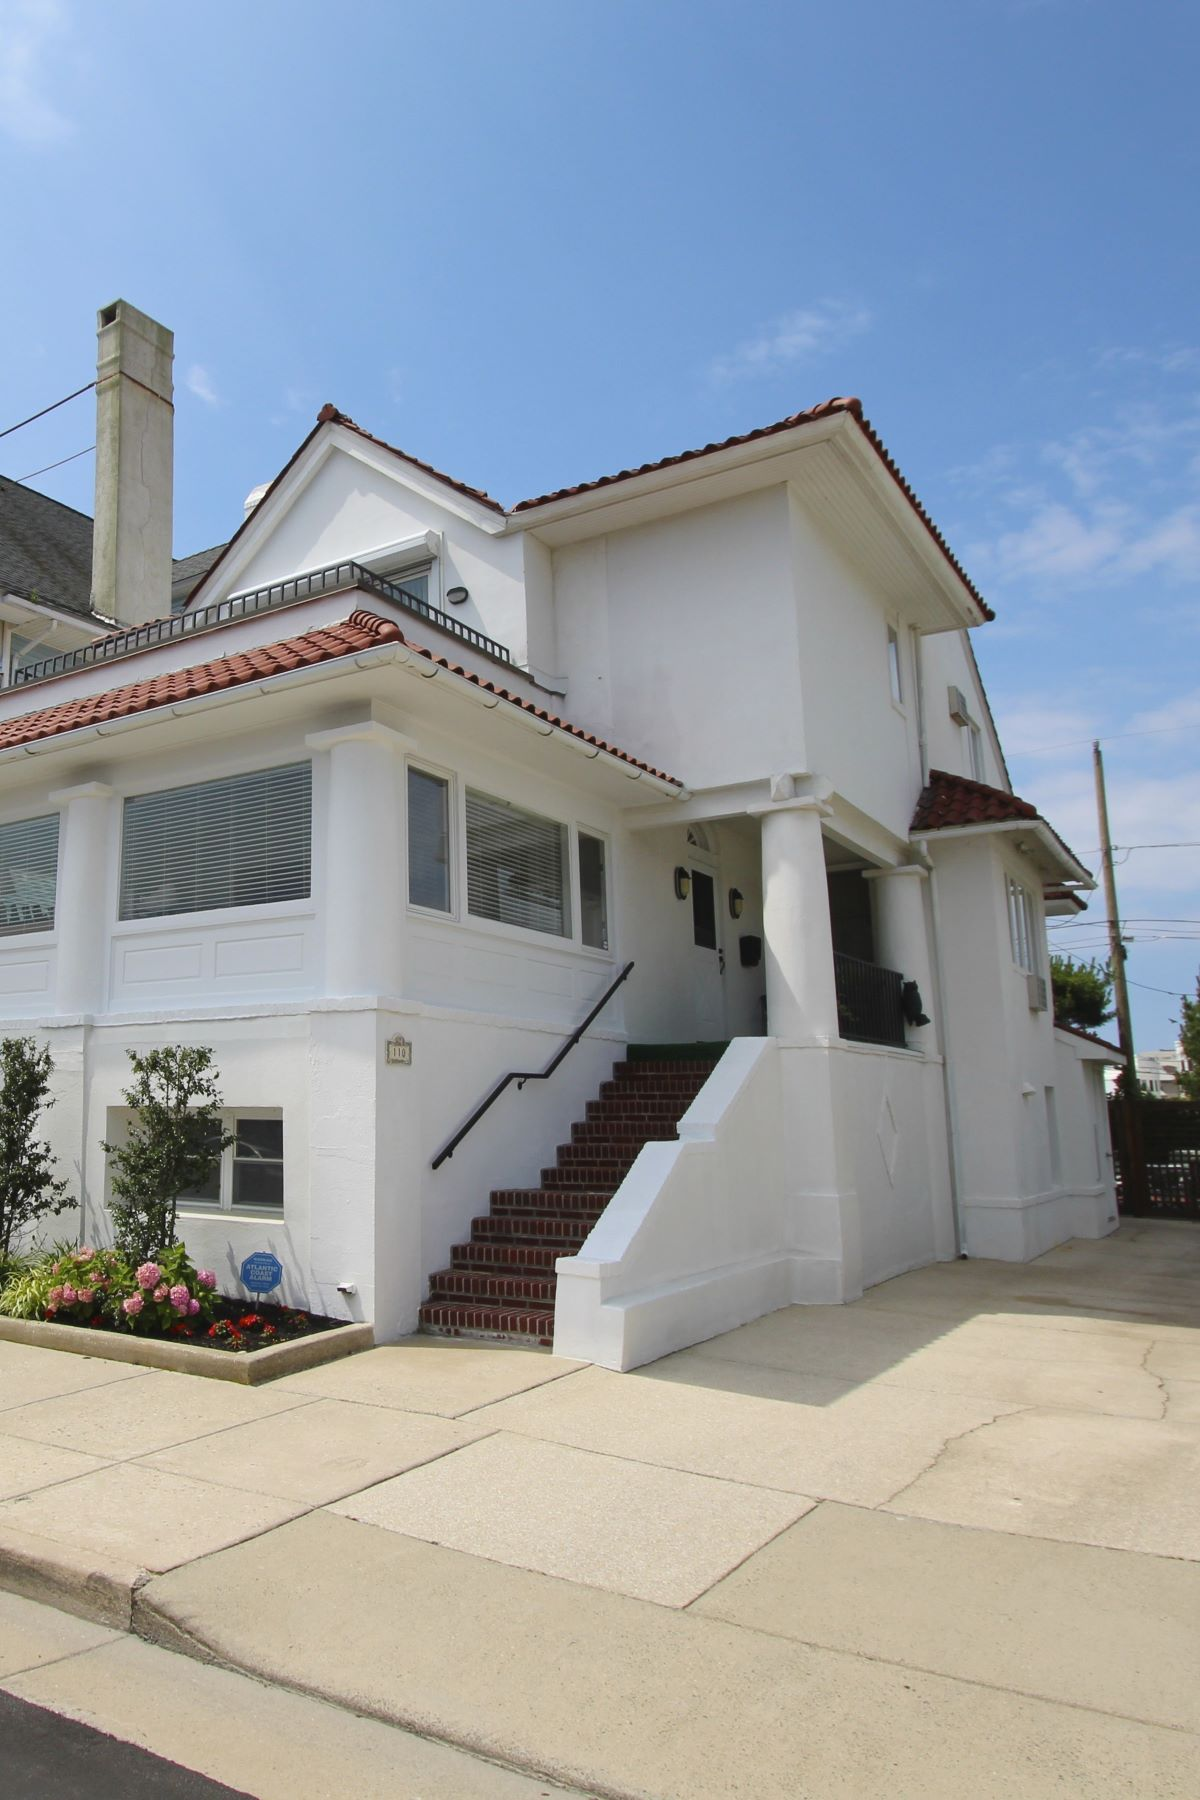 Single Family Home for Sale at 110 S Somerset Ventnor, New Jersey, 08406 United States